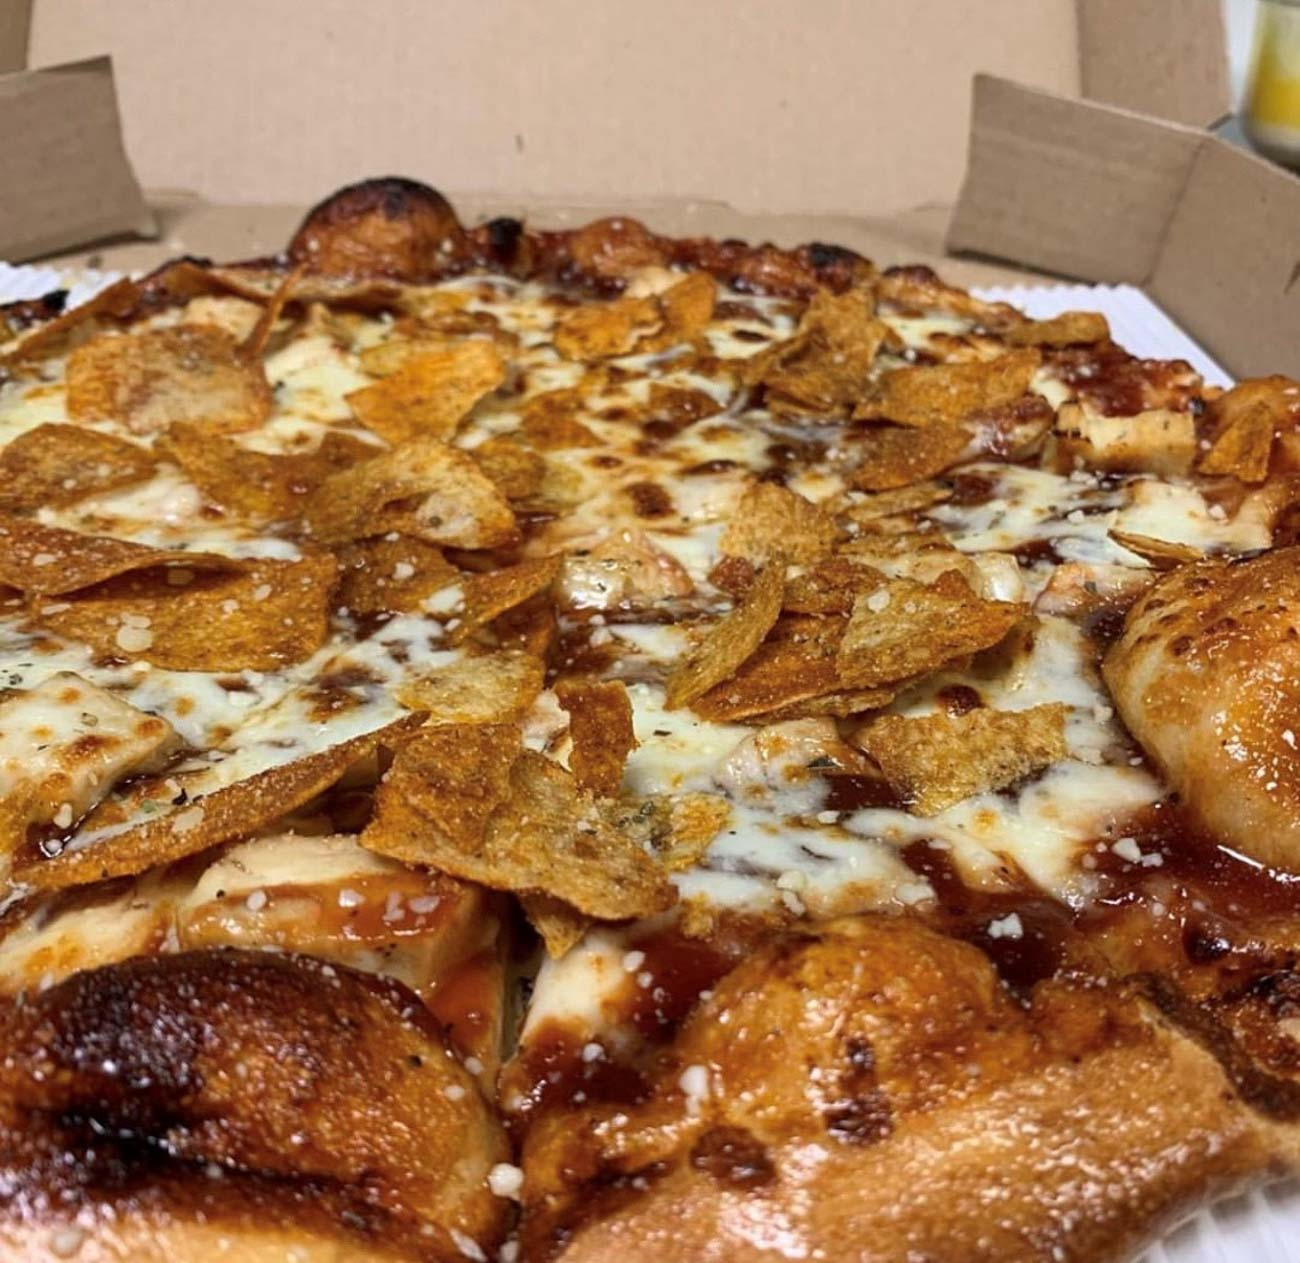 The Grippo's: a BBQ sauce base, chicken, mozzarella cheese, & topped with BAR-B-Q flavored Grippo's / Image courtesy of Poseidon's Pizza Company // Published: 7.8.20